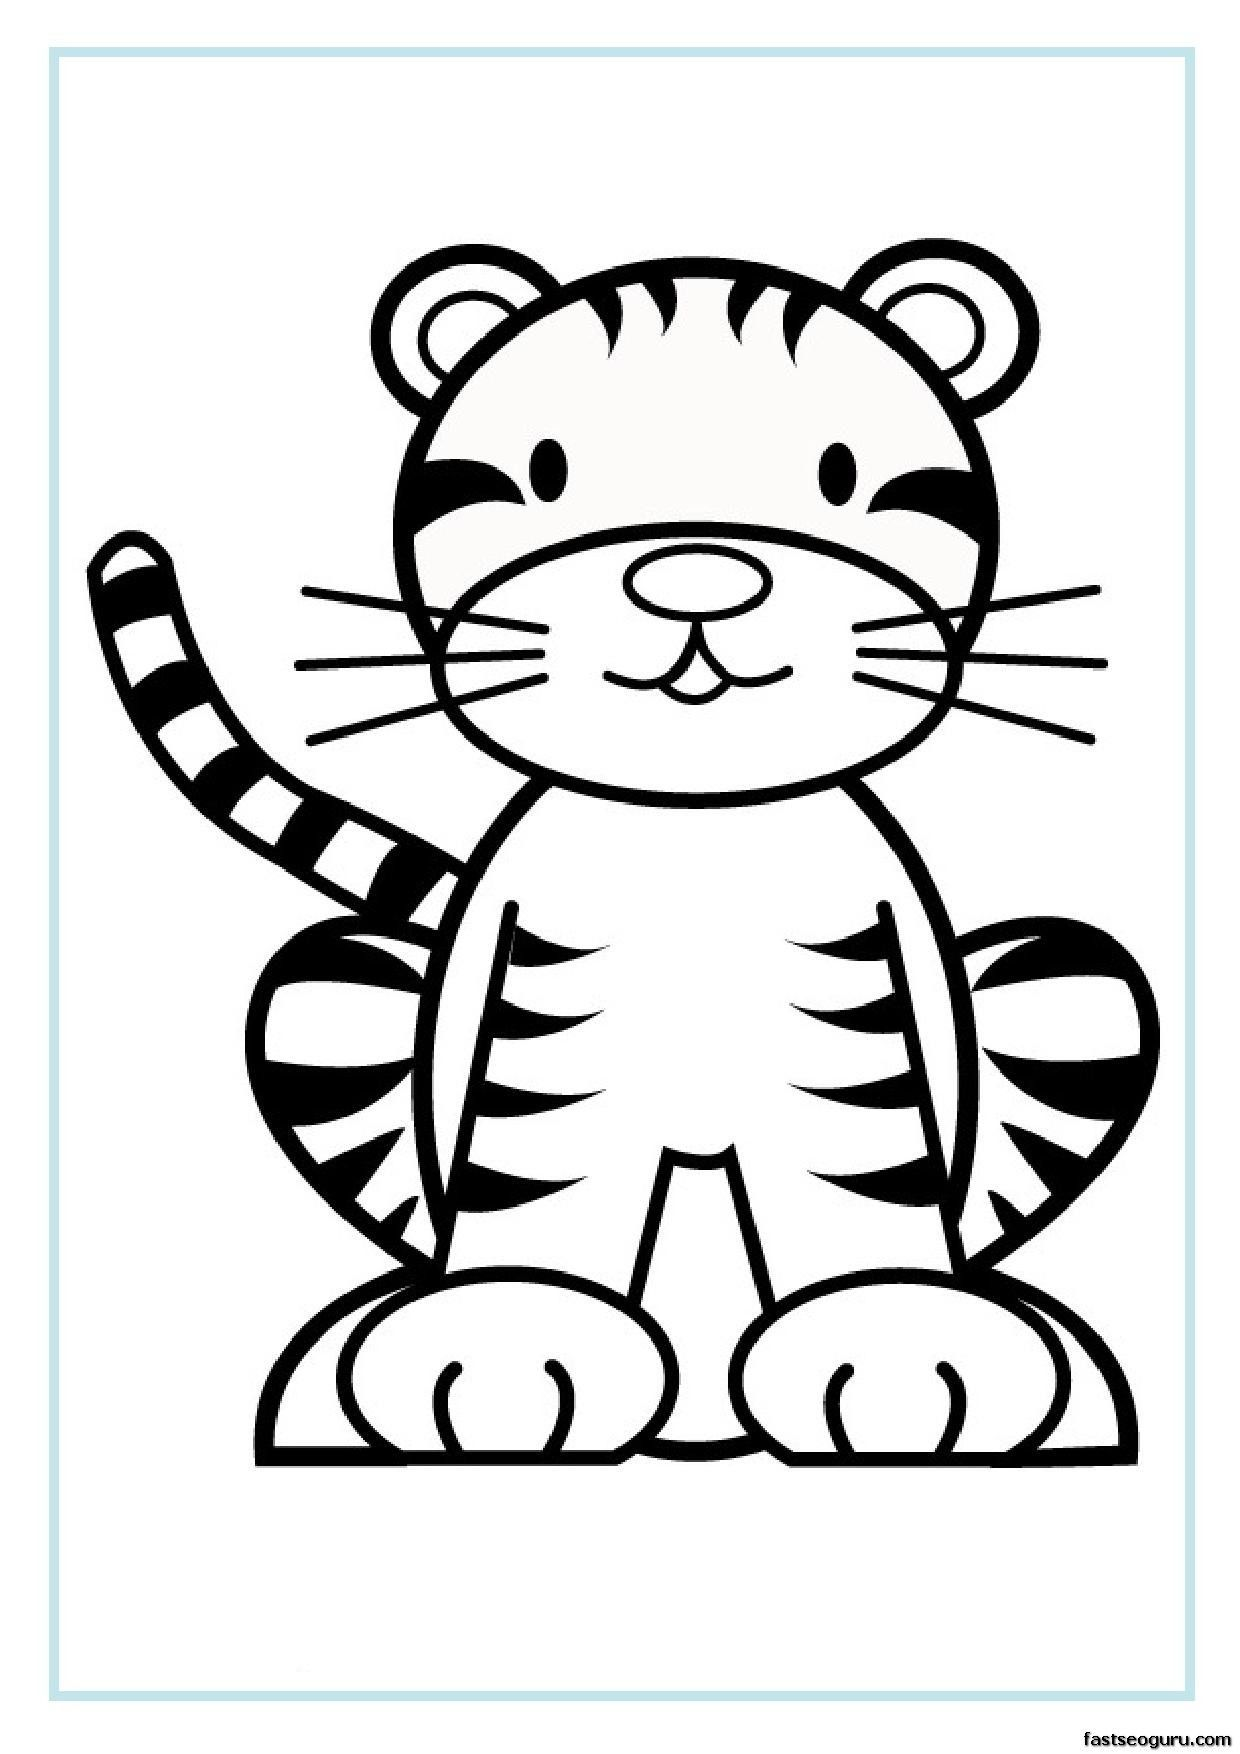 Cute Animal Coloring Pages Best Coloring Pages For Kids Elephant Coloring Page Animal Coloring Books Cartoon Coloring Pages